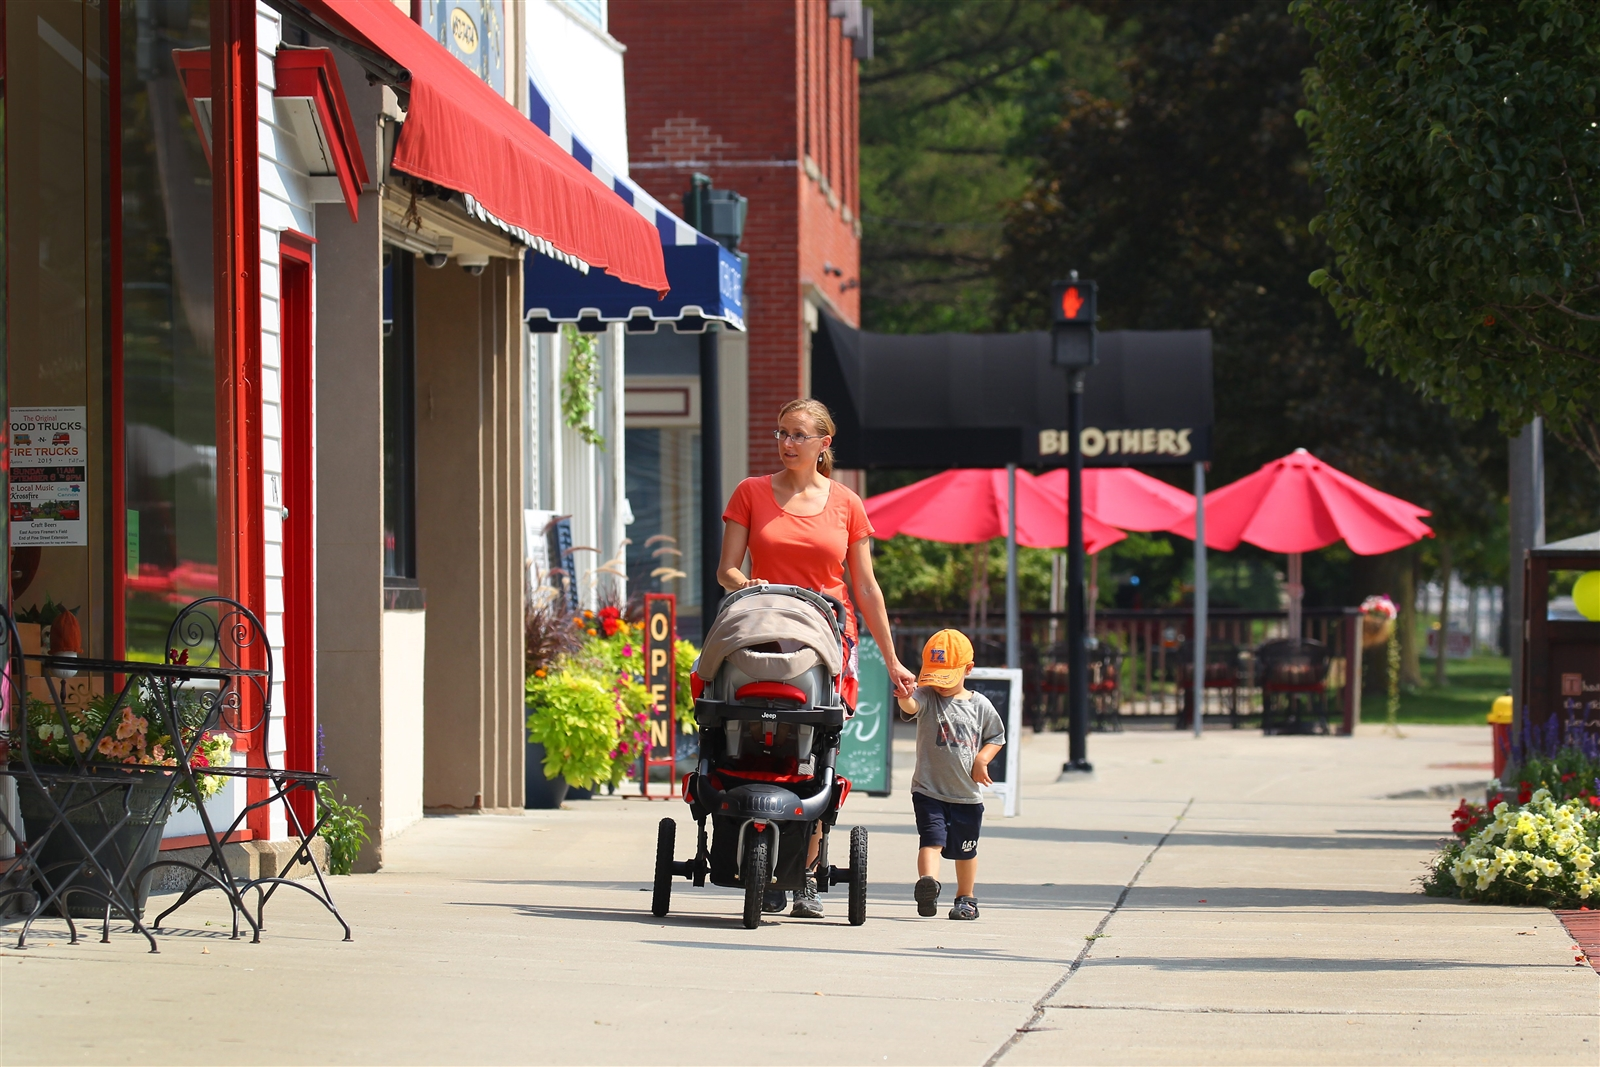 Danielle Cofta walks with her children Jackson, right, and Miles, in stroller, on Main Street in East Aurora.